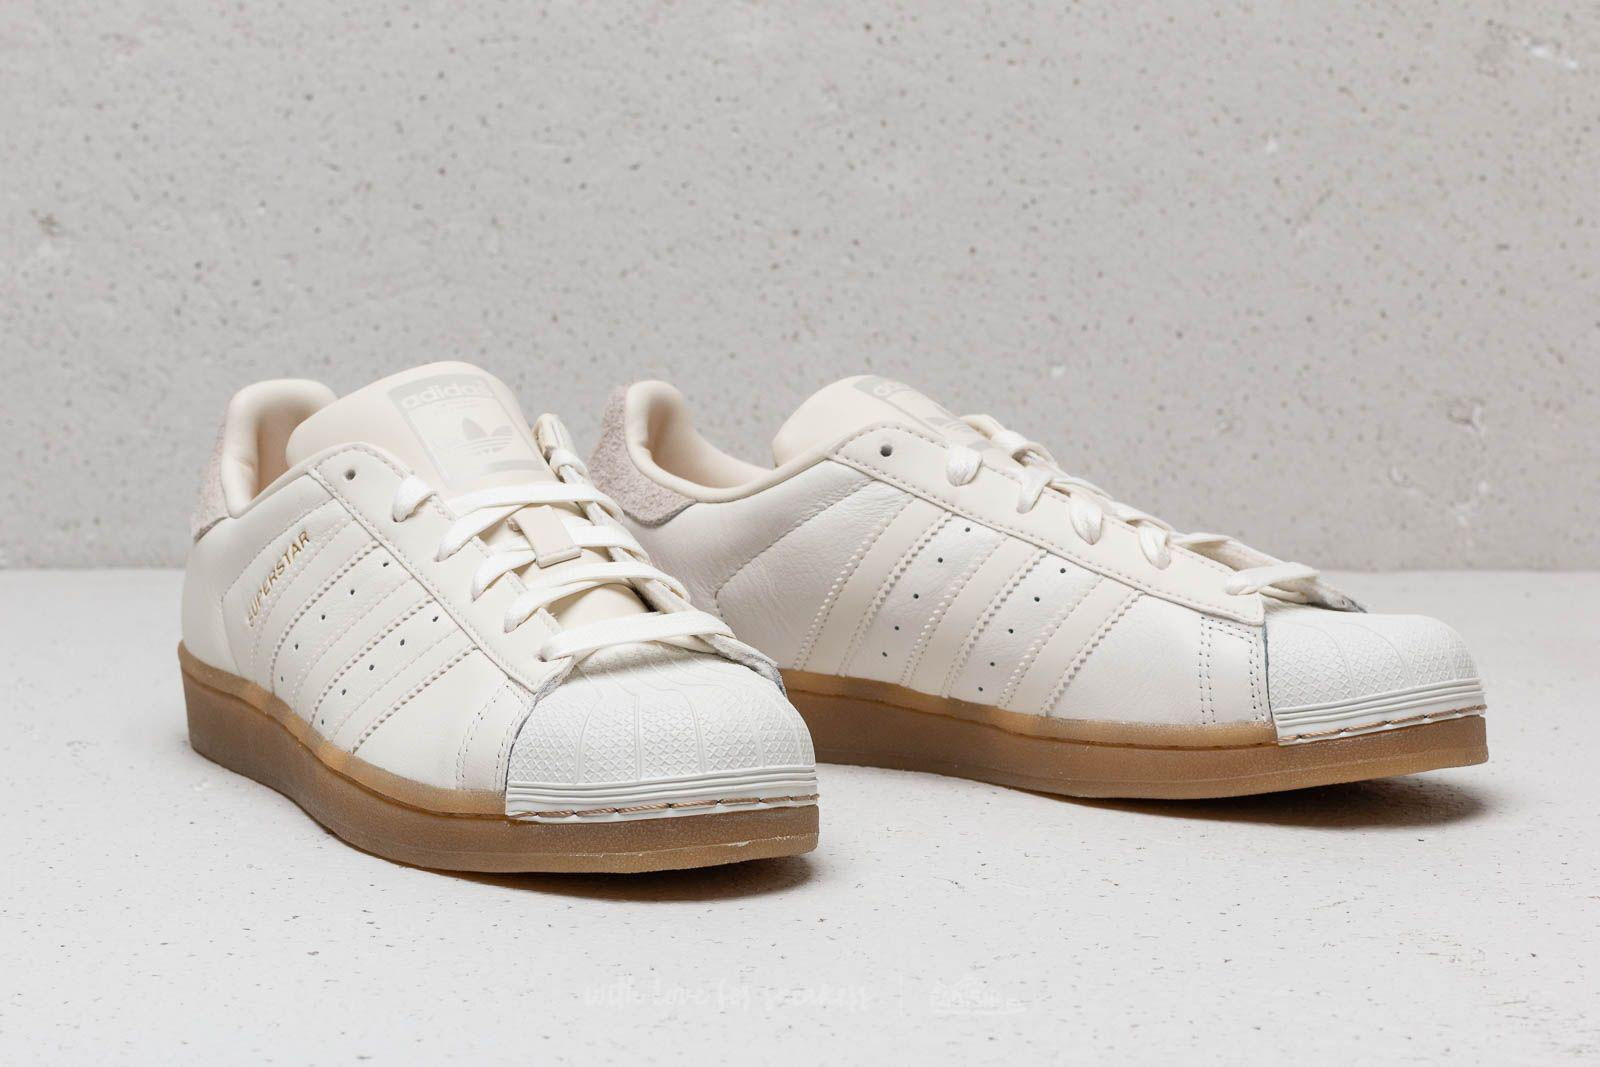 Lyst - adidas Originals Adidas Superstar W Cloud White  Cloud White ... 937f53bc0654d